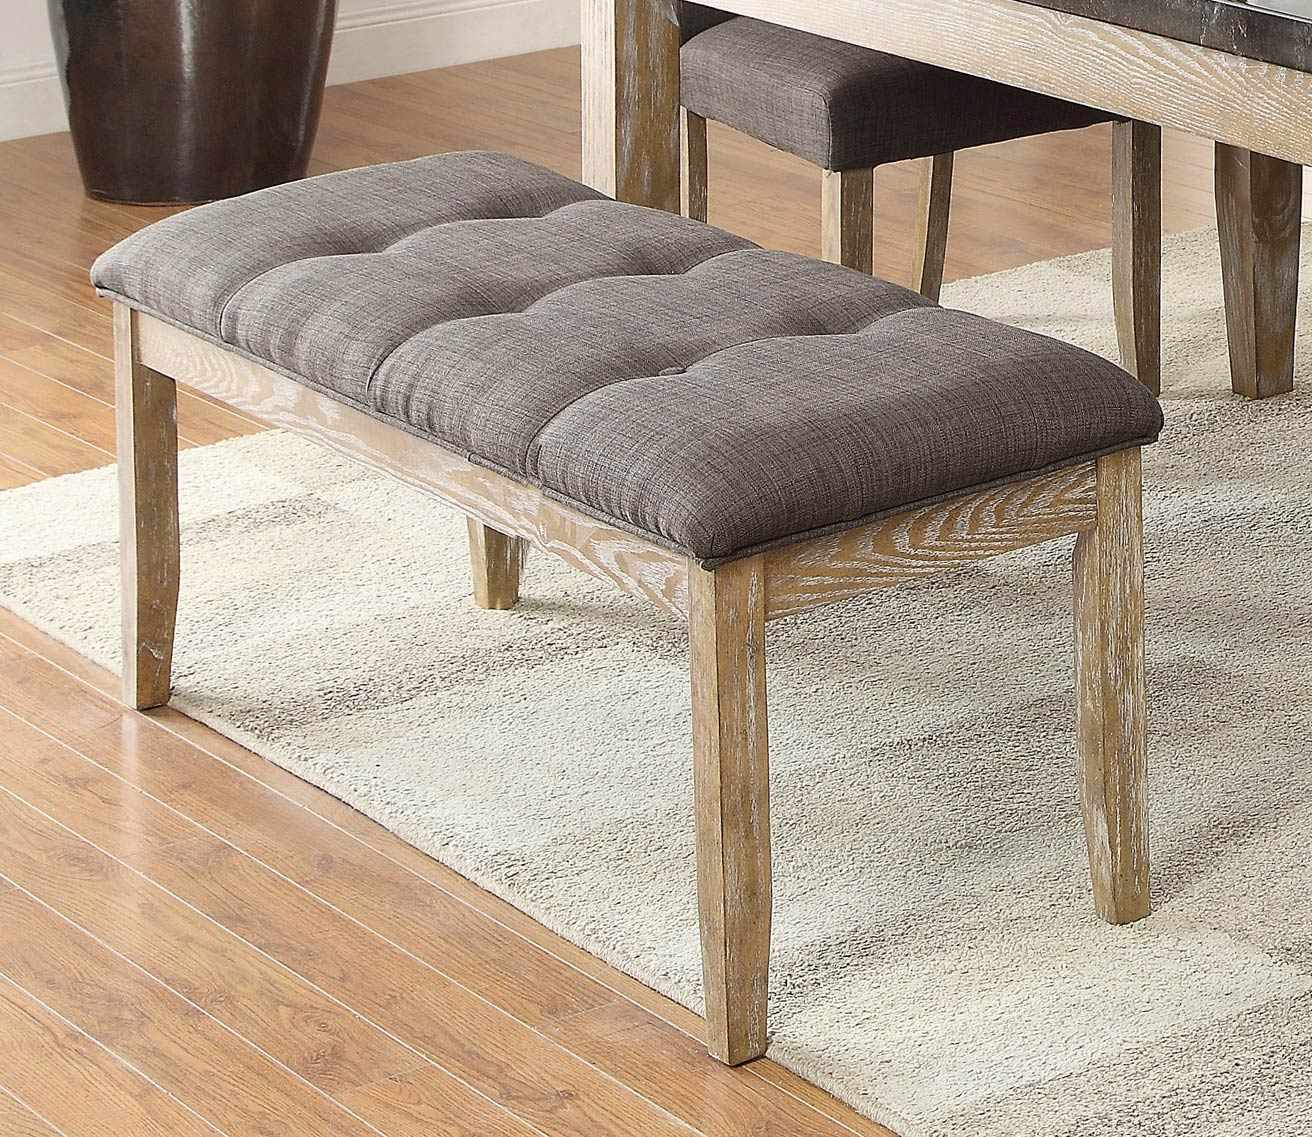 Homelegance Huron 49-inch Bench - Weathered Wood